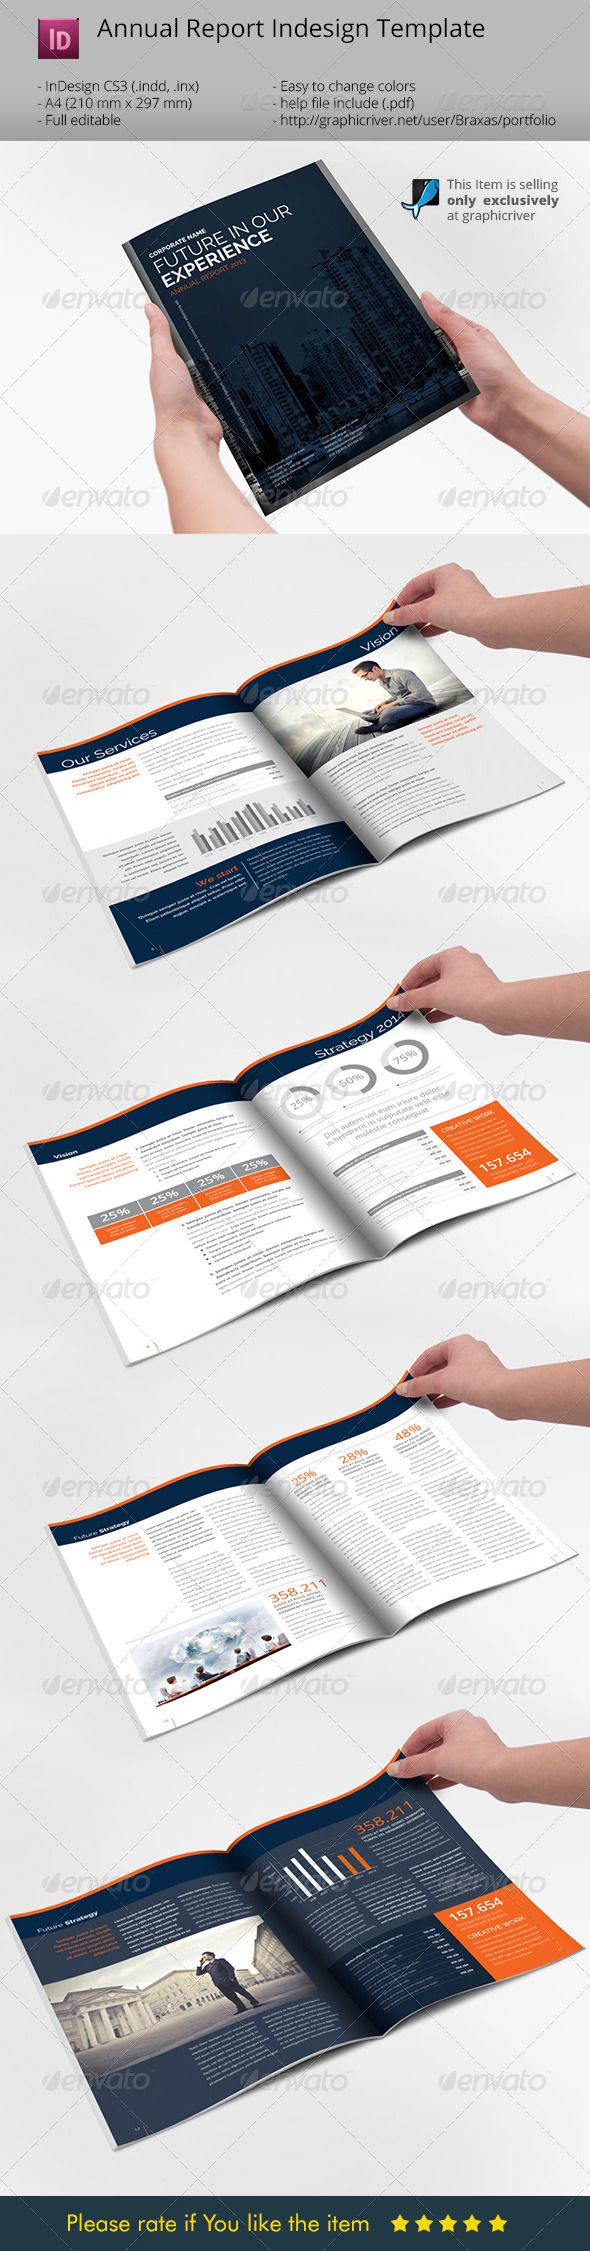 Annual Report Indesign Template | Diseño editorial y Editorial